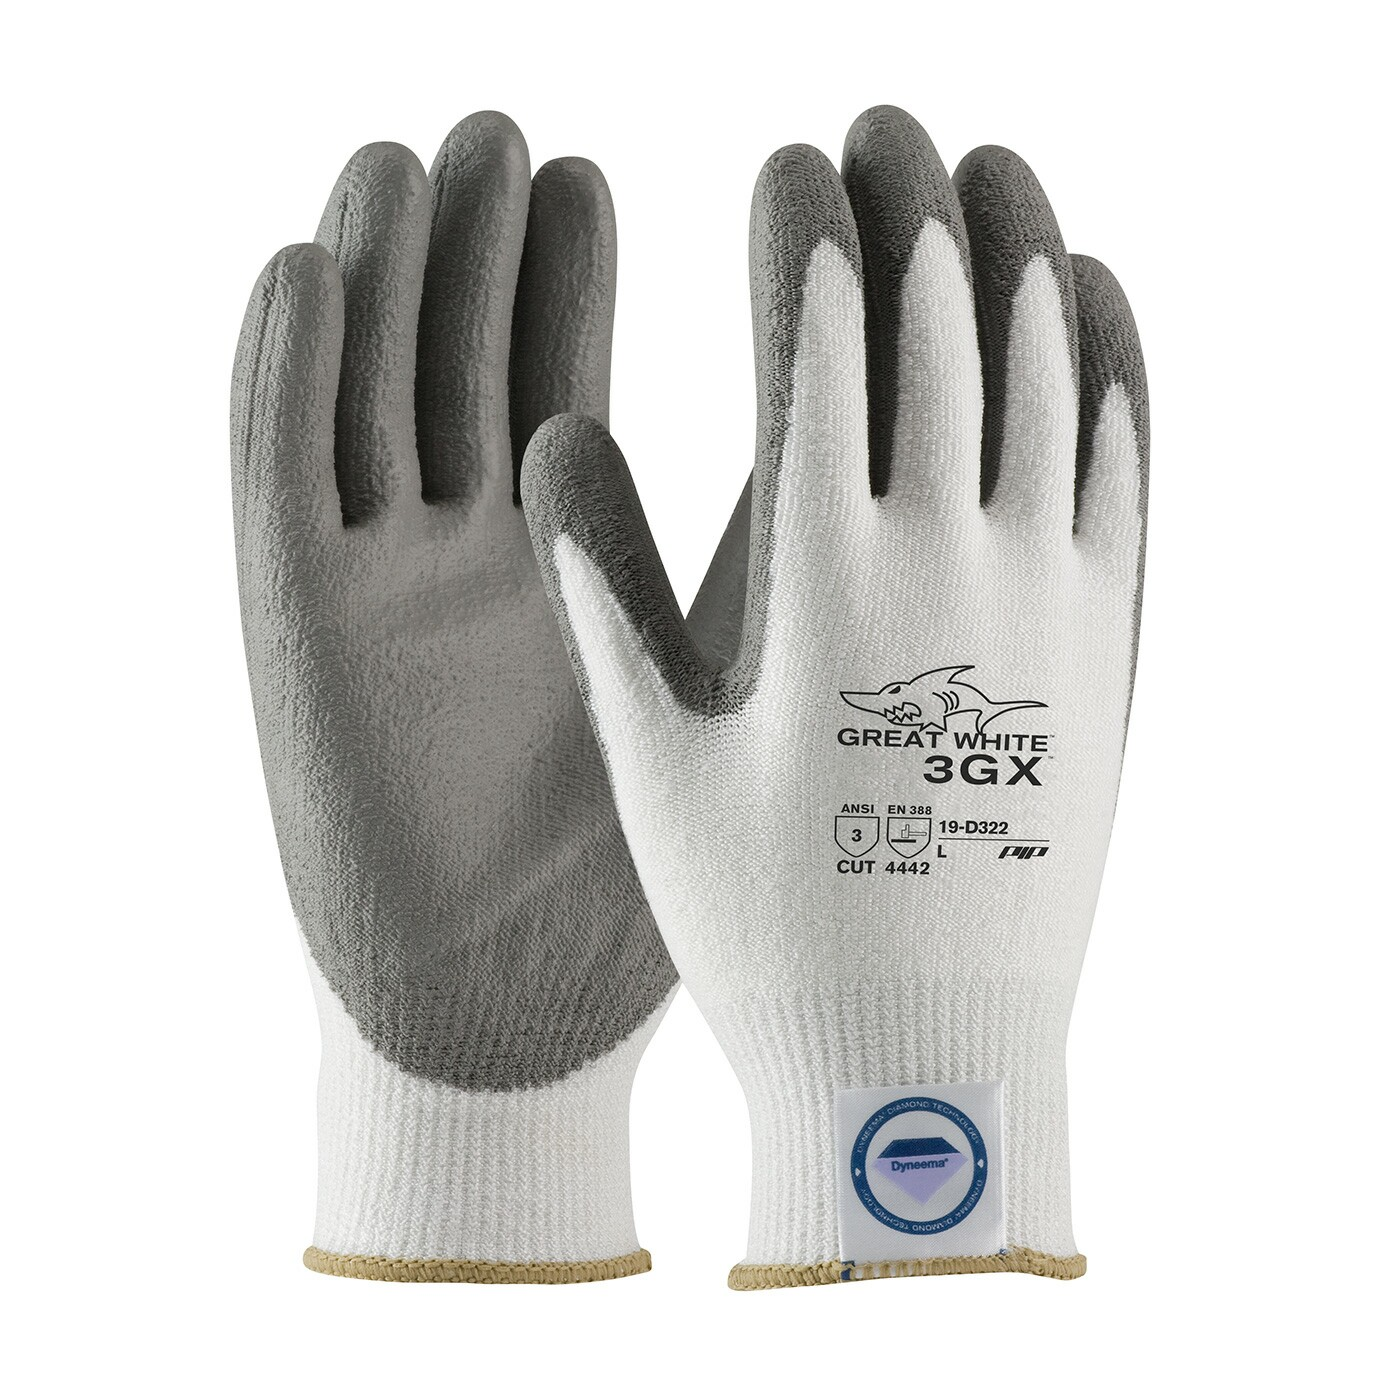 Great White Dyneema Cut Resistant Gloves Cut Resistant